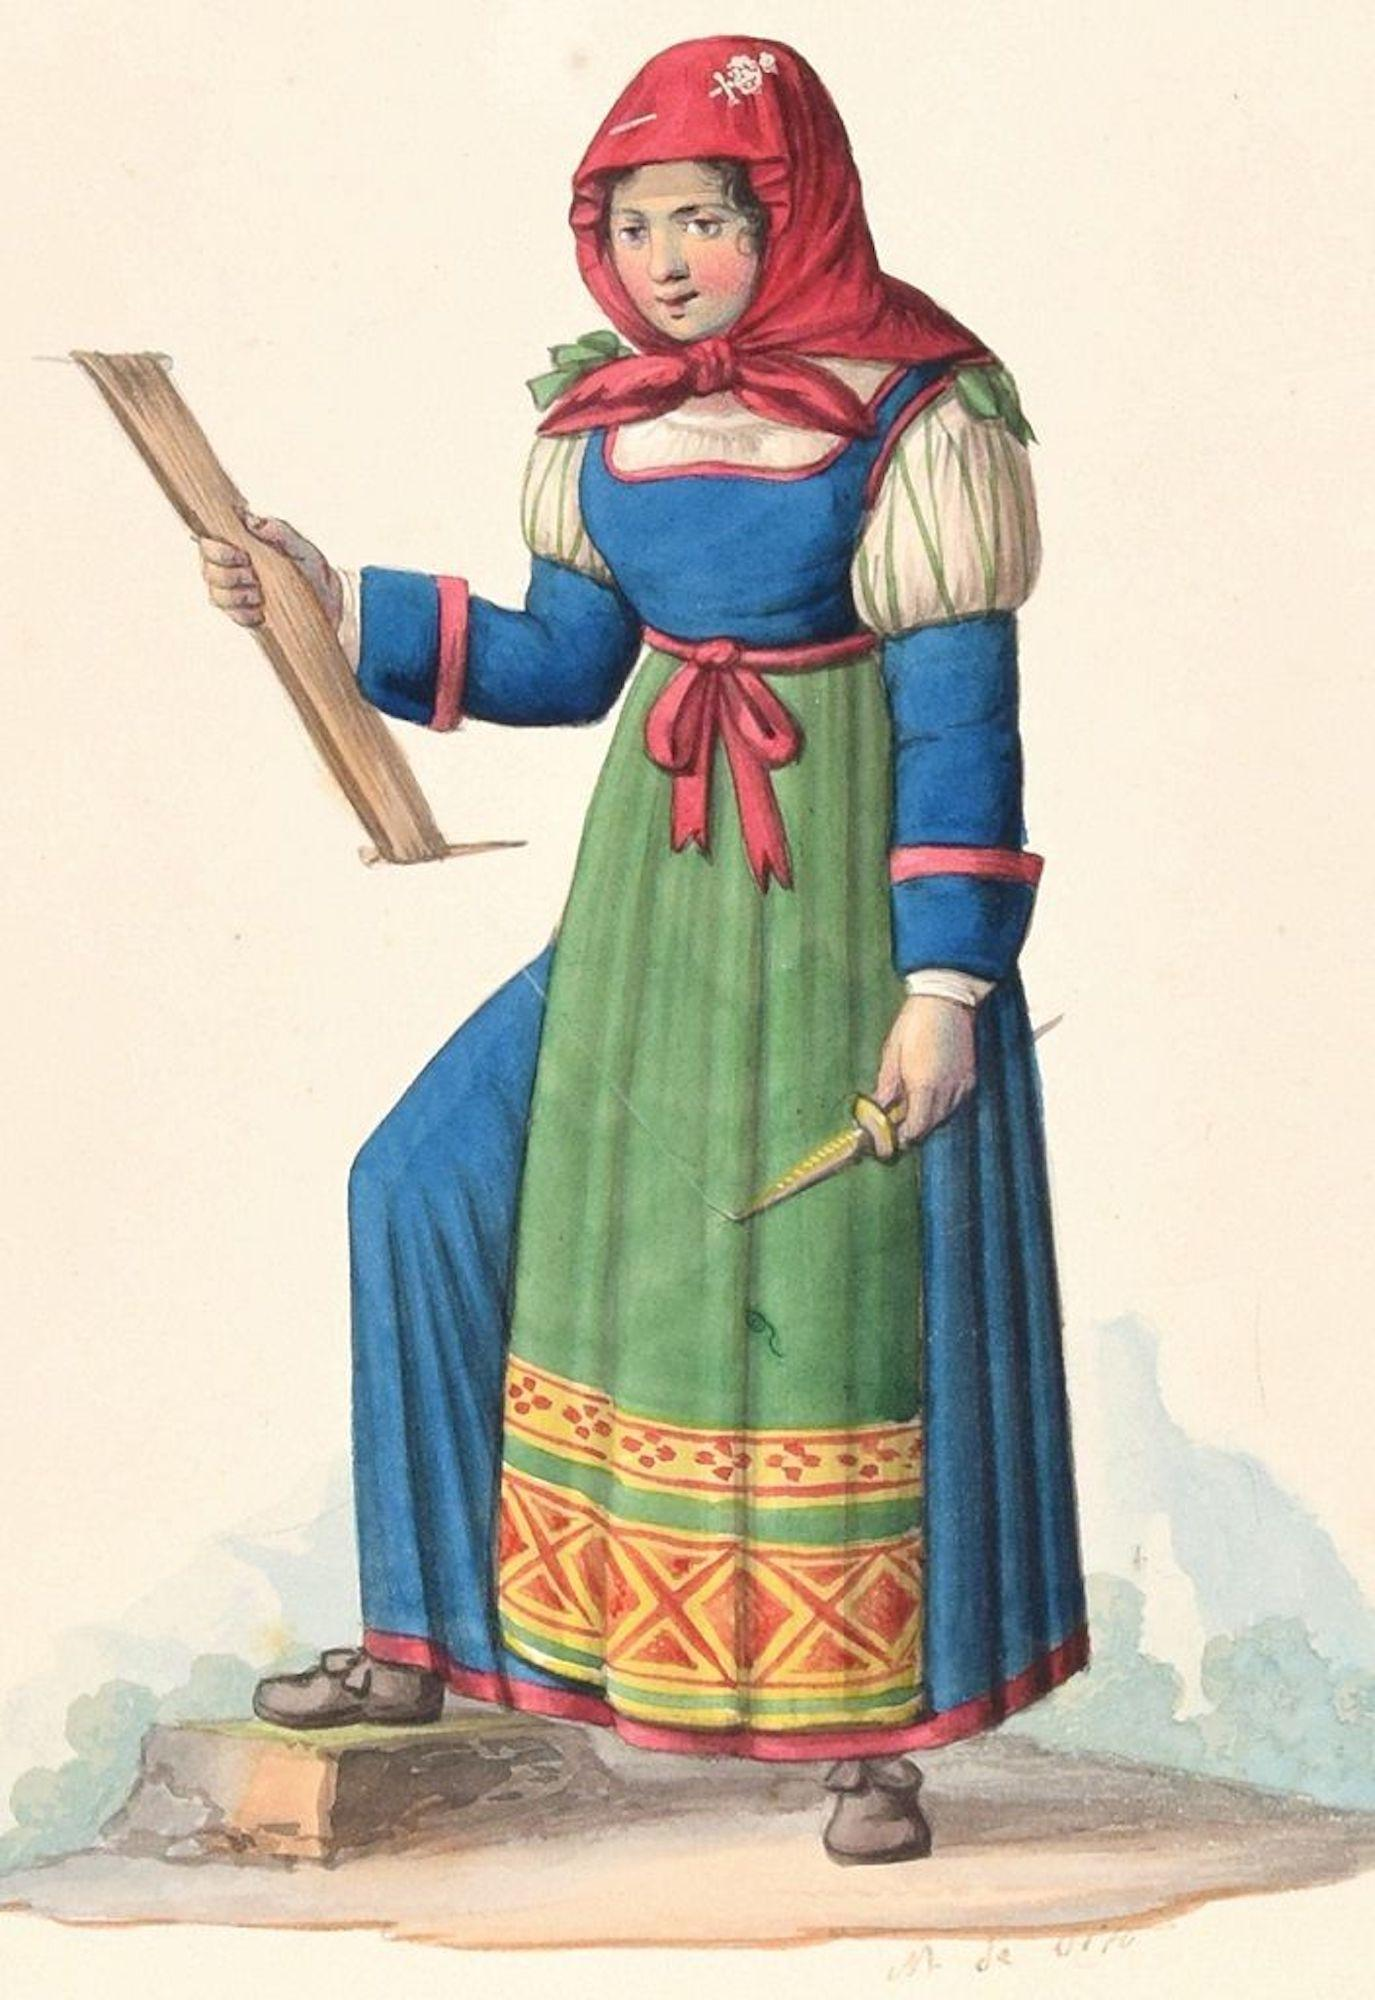 Woman in Costume  - Original Ink Watercolor by M. De Vito - Early 1800